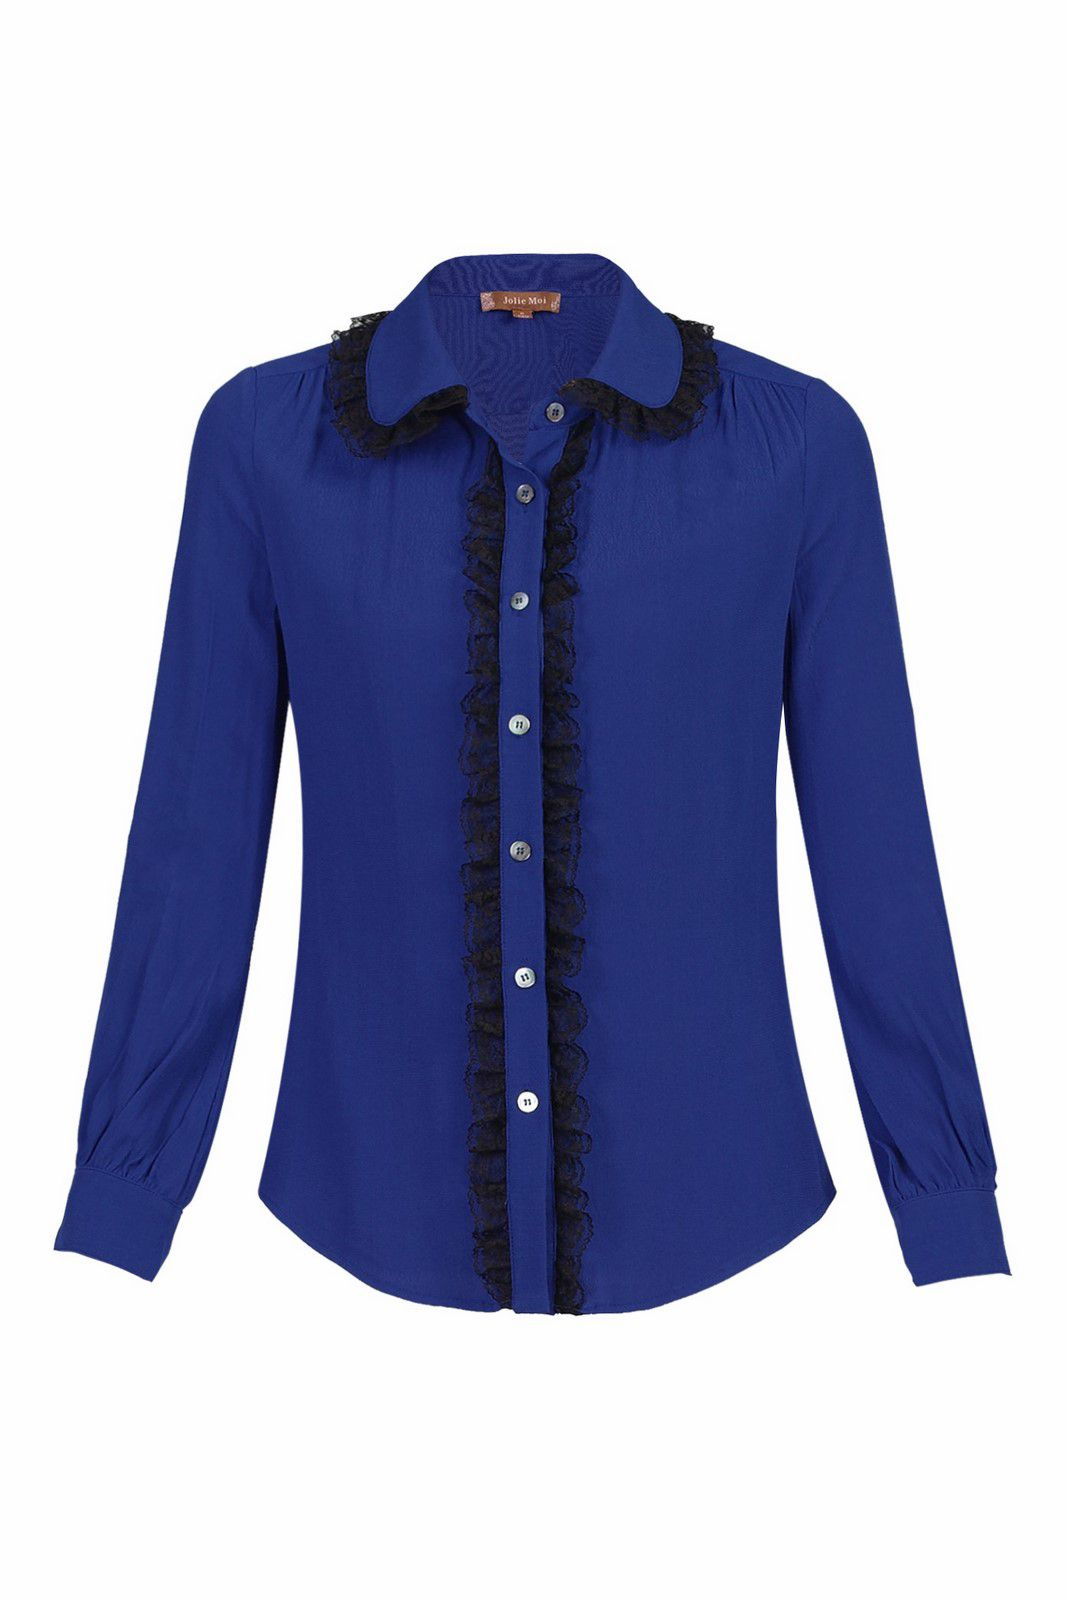 Jolie Moi Contrast Lace Trimmed Blouse, Royal Blue